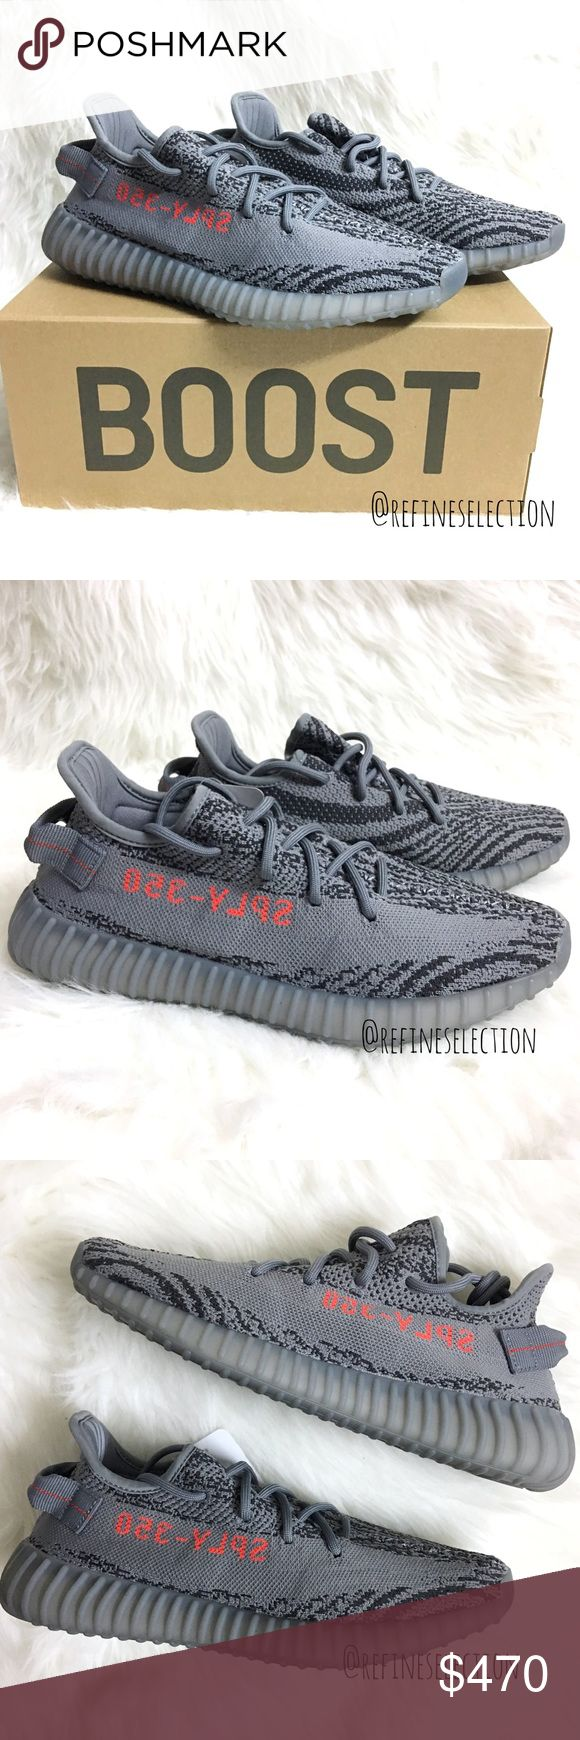 adidas Yeezy Boost 350 V2 Beluga 2.0 Sneakers Brand new with tags, in its original box, Men's size 9. Absolutely 100% Authentic! These adidas Yeezy Boost 350 V2 Beluga 2.0 Sneakers are a must have! Grab them for yourself or make this the perfect Christmas present! Grey, Dark Solid Grey and Bold Orange Colorway. Deadstock and sold out, your chance to grab them here! Yeezy Shoes Sneakers